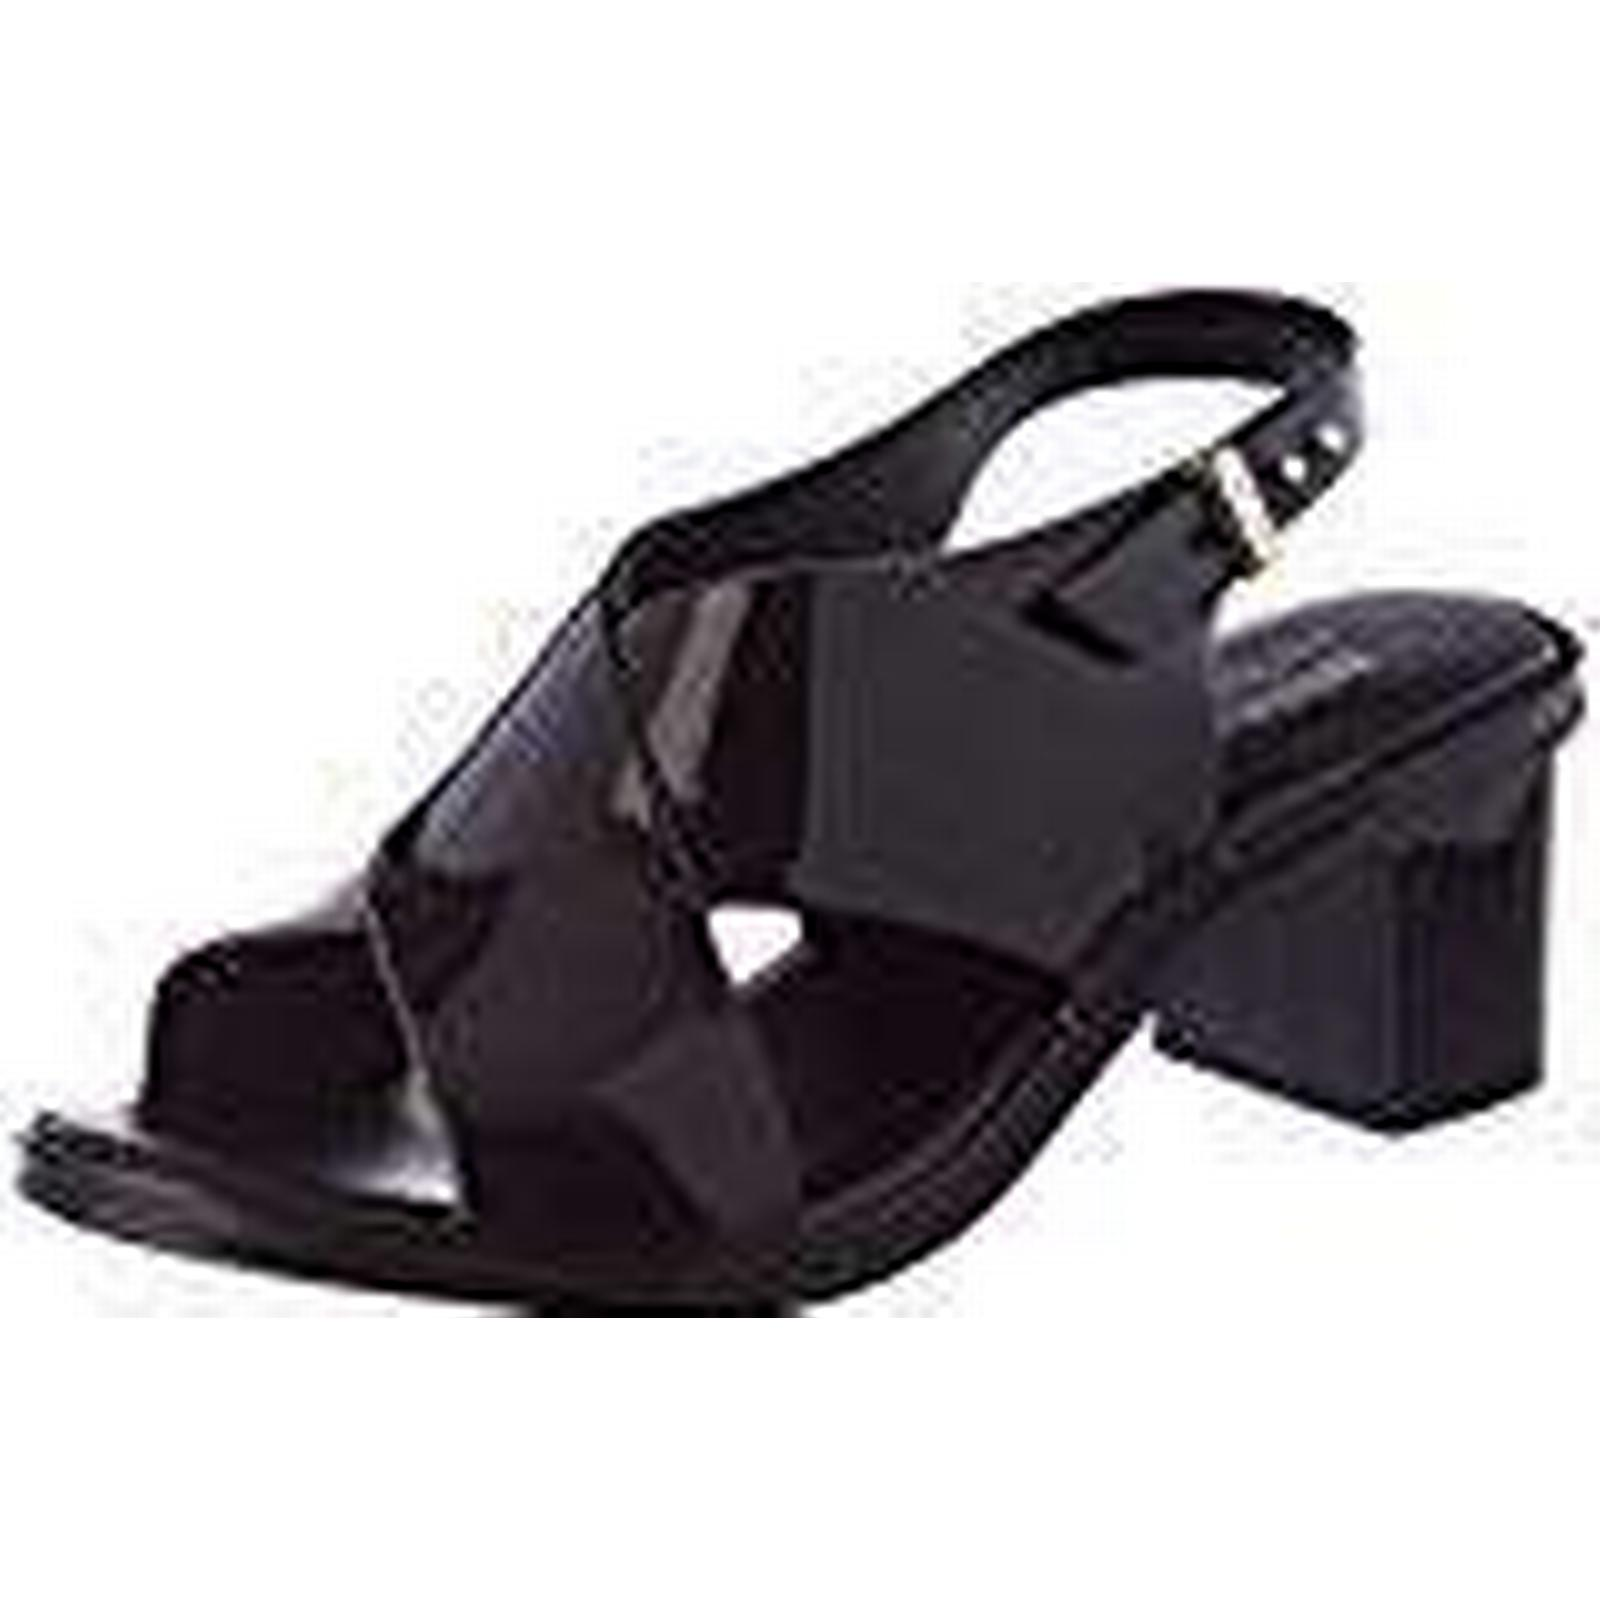 Melissa UK Women''s JW Jamie Ankle Strap Sandals, (Black), 6 UK Melissa 39 EU 39 EU 1928b1